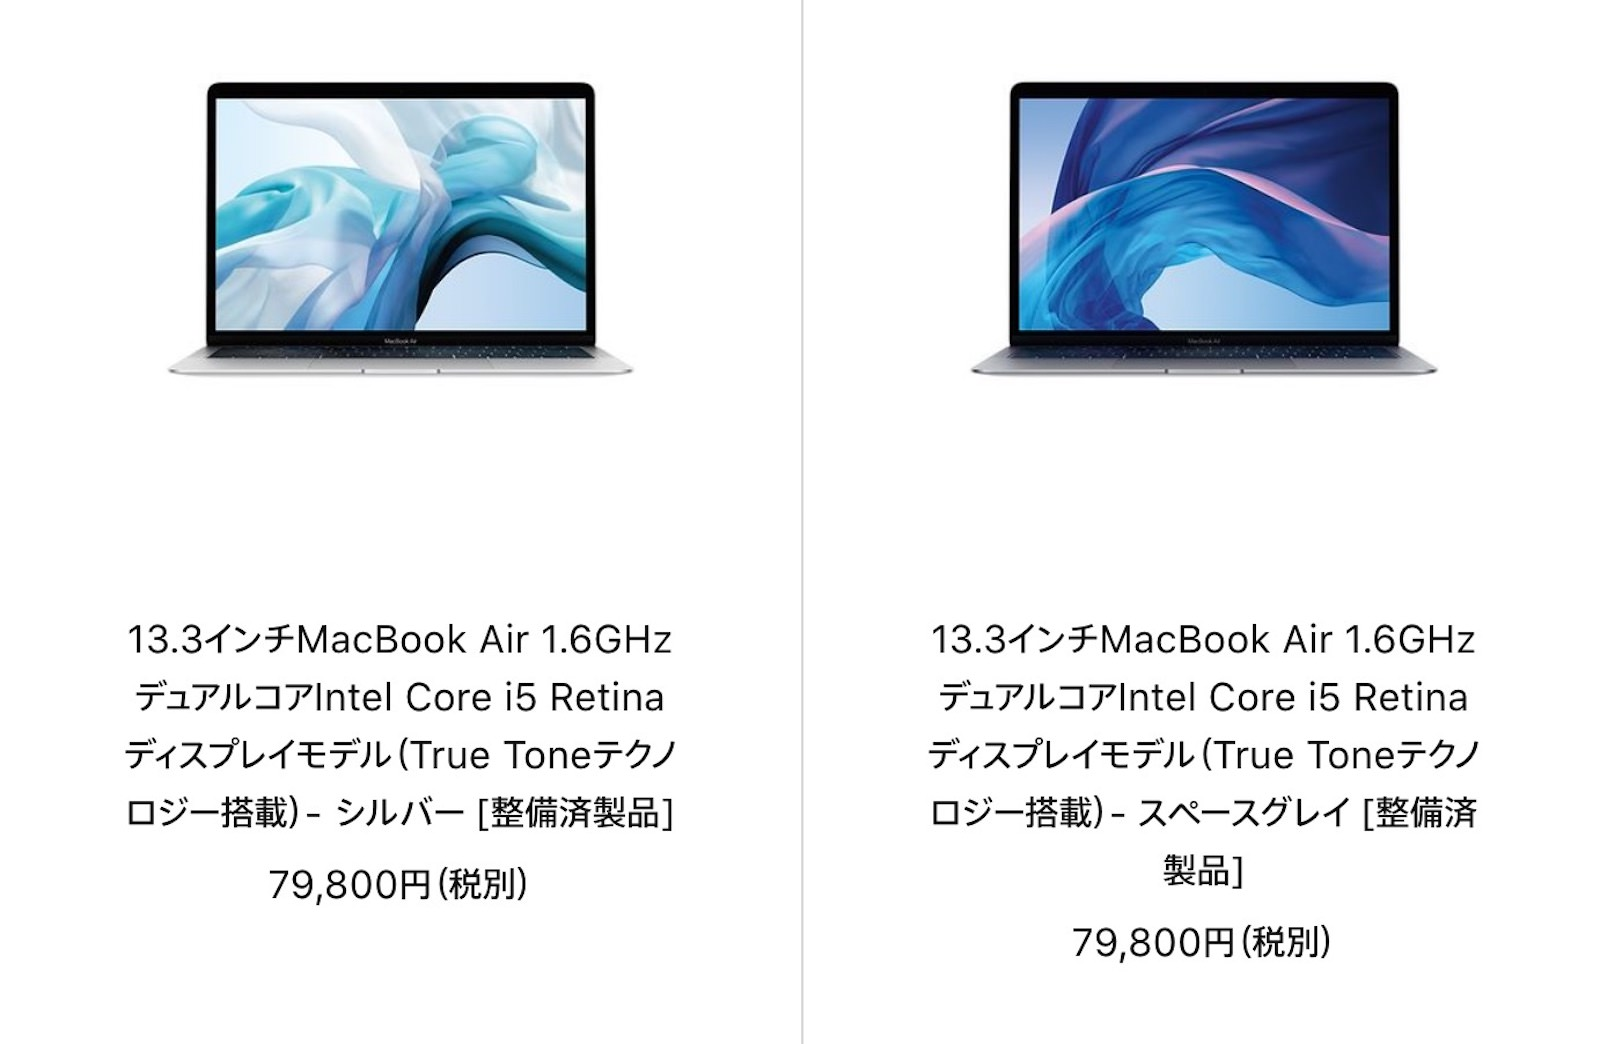 Apple refurbished macbook air